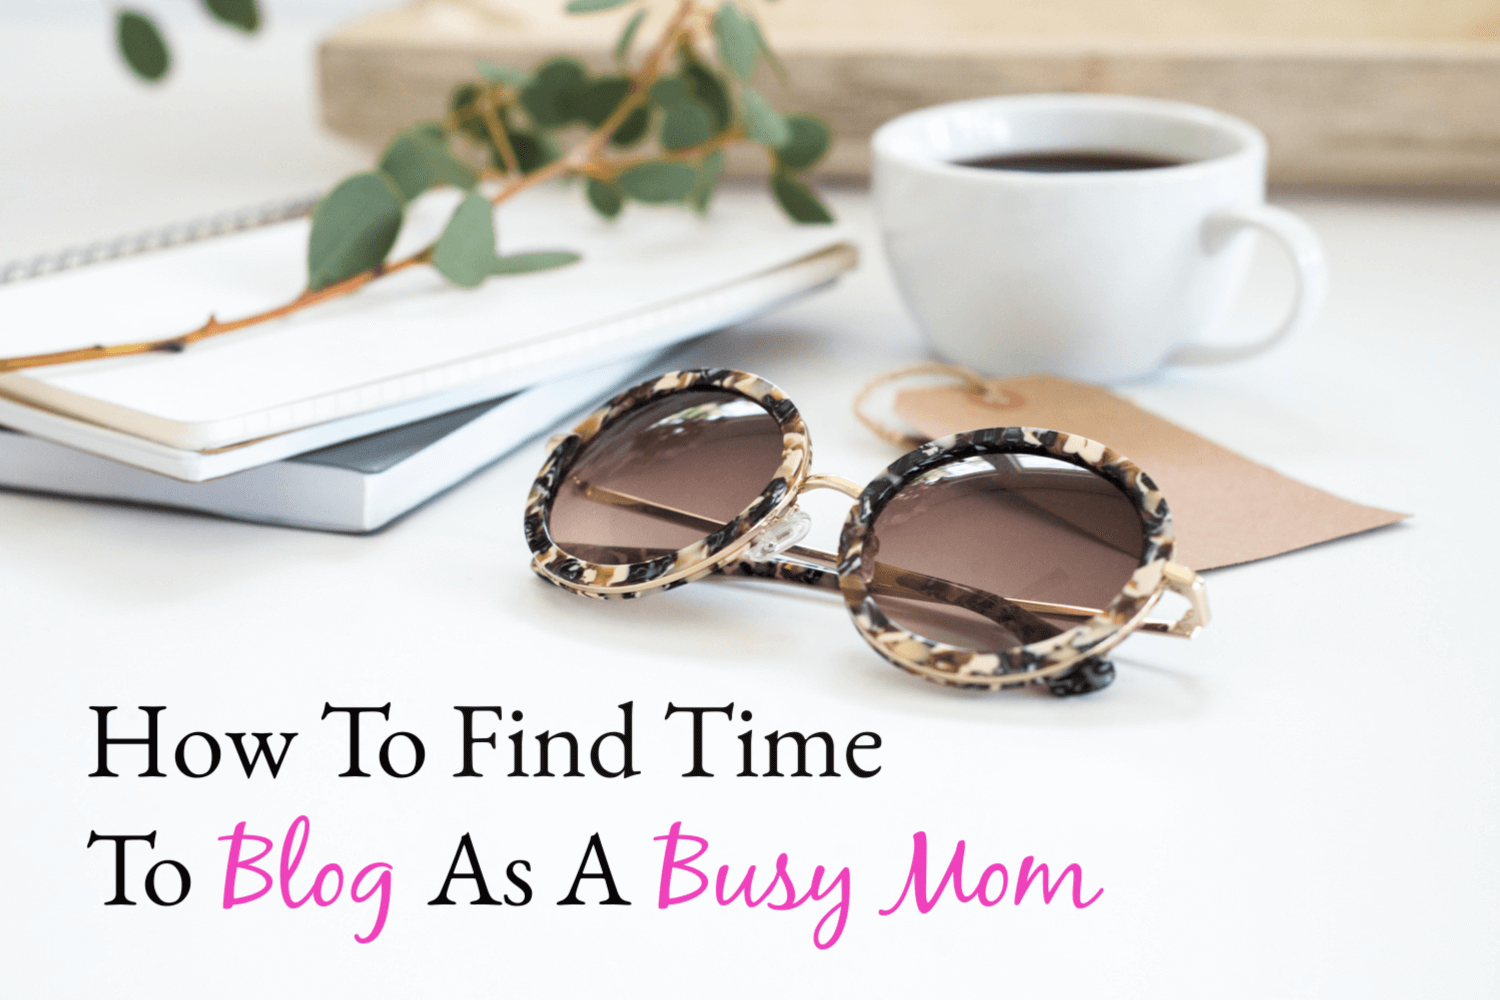 How To Find Time To Blog As A Busy Nurse & Mom